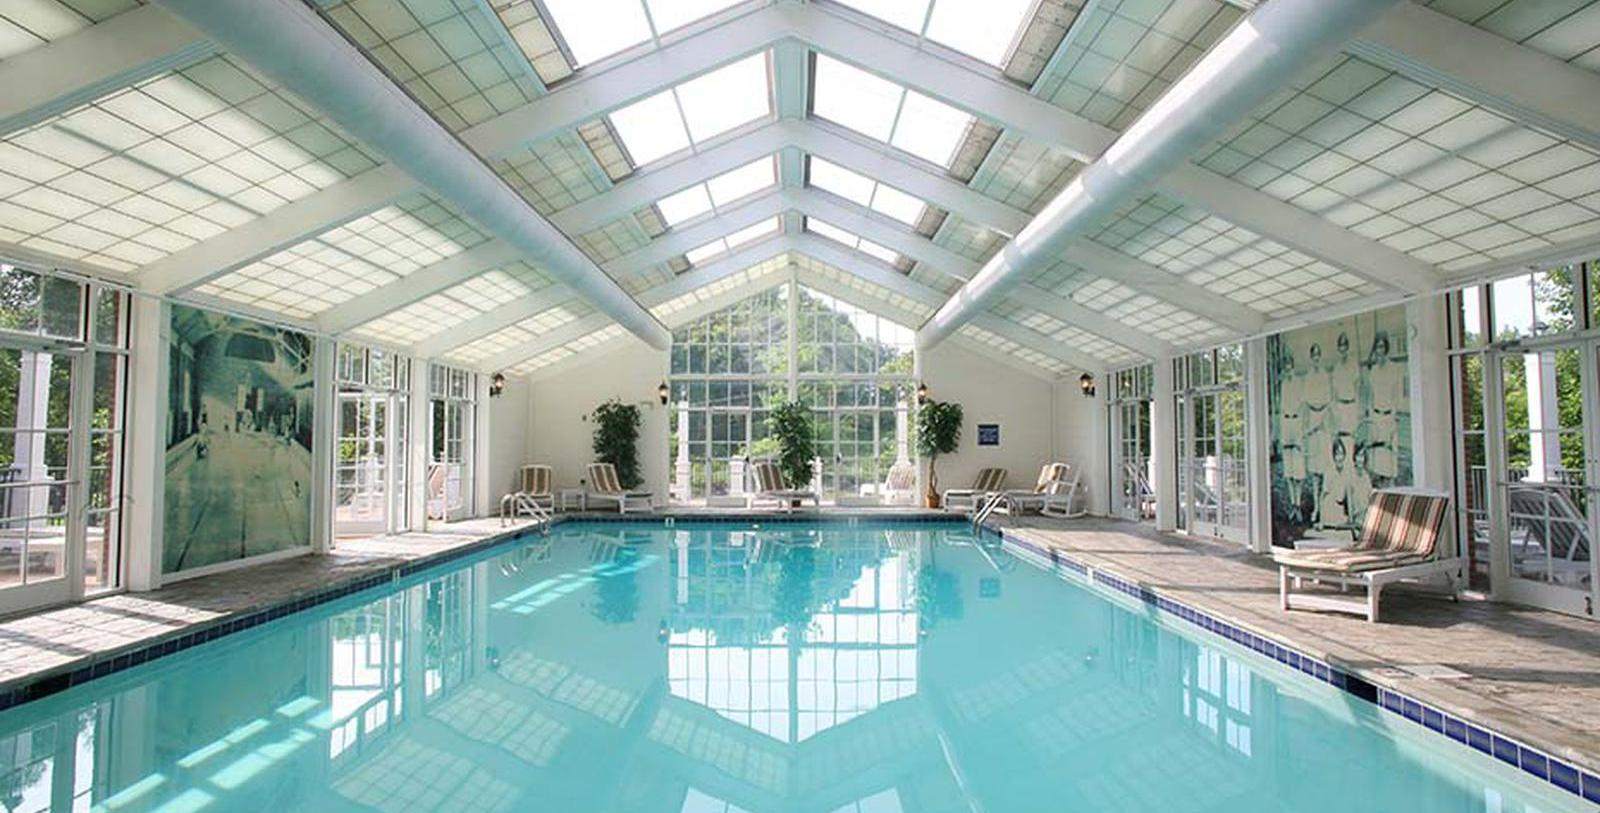 Image of Indoor Pool at The Martha Washington Hotel & Spa, 1832, Member of Historic Hotels of America, in Abingdon, Virginia, Explore